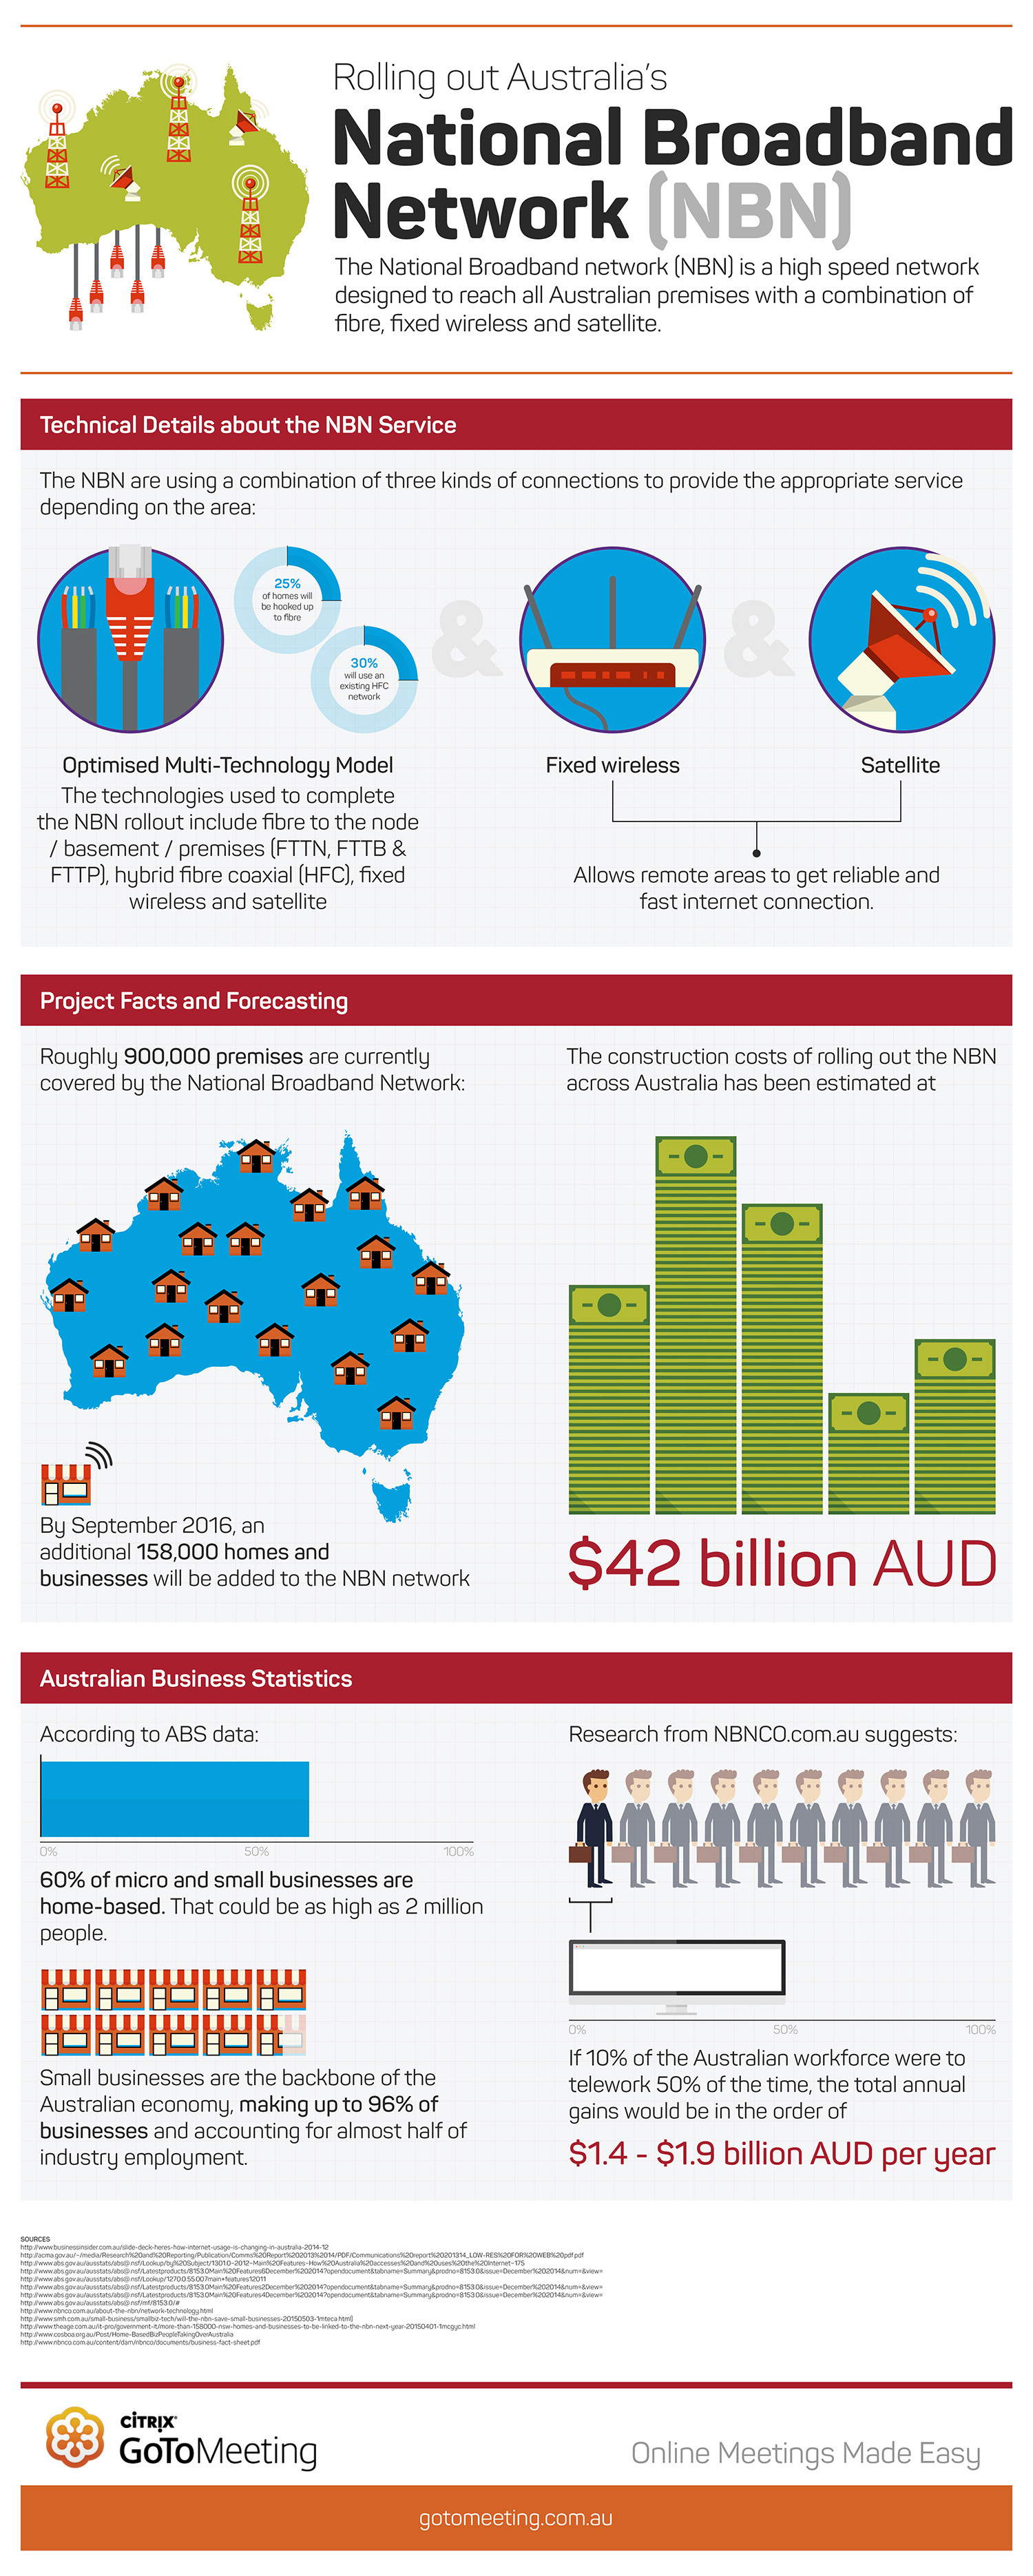 Citrix GoToMeeting - What is the NBN rollout in Australia? Infographic